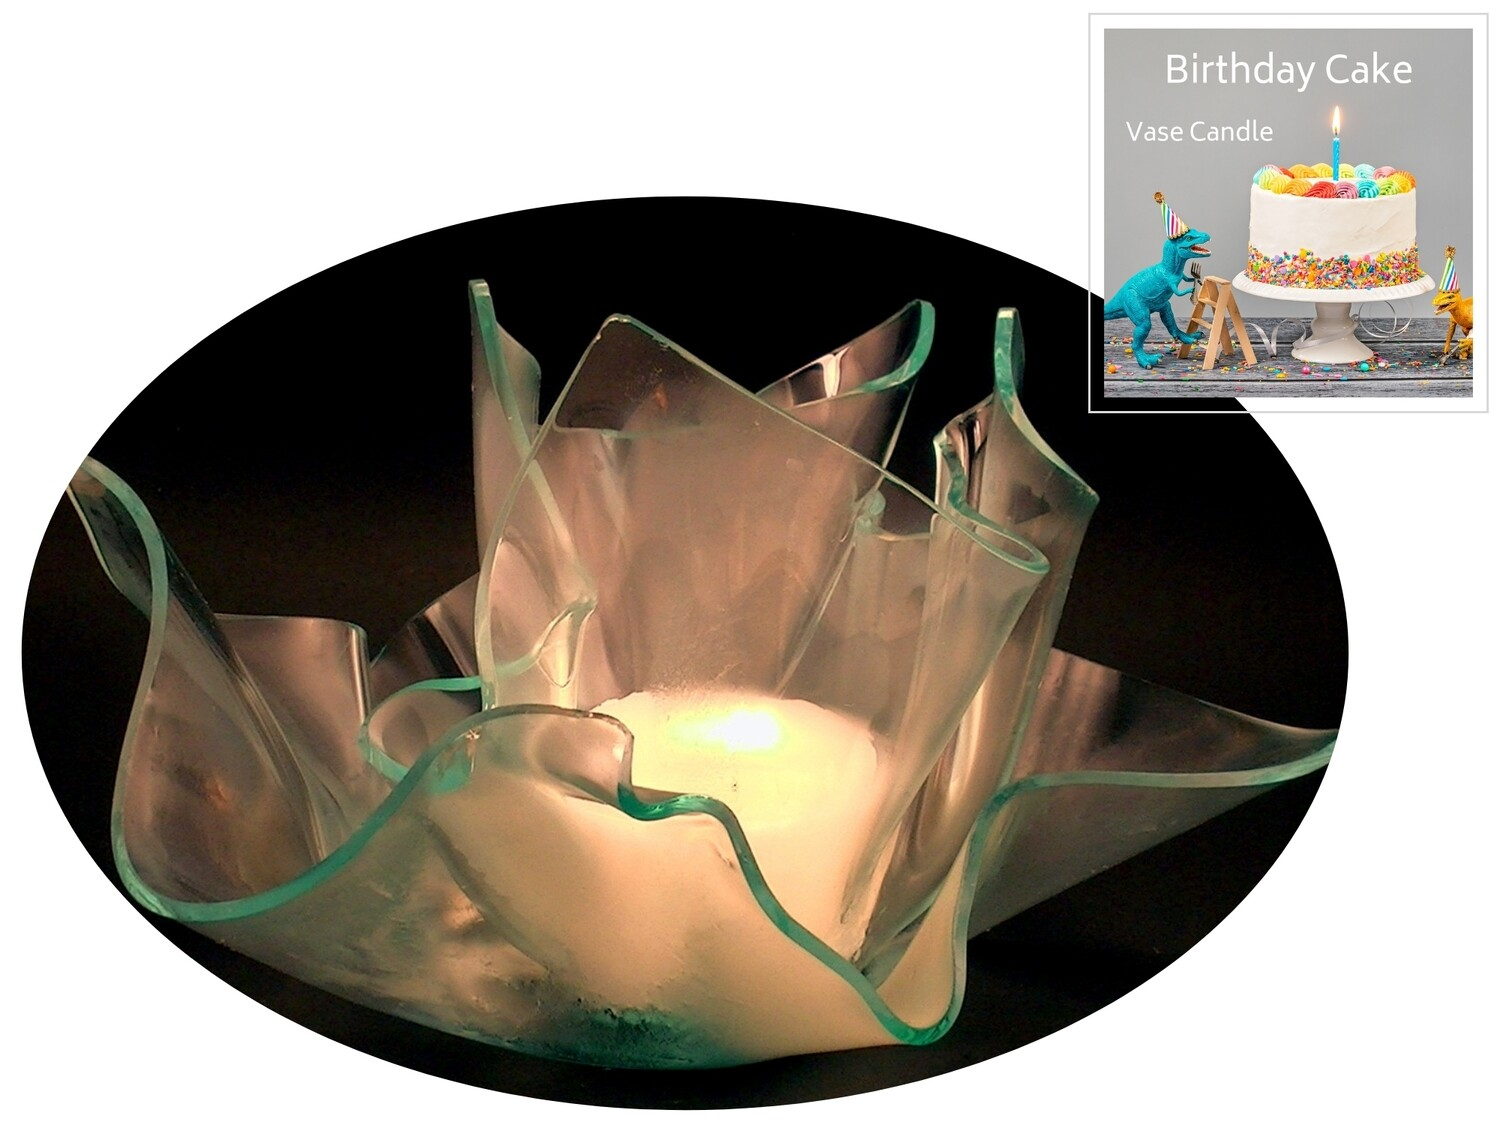 2 Birthday Cake Candle Refills |Clear Satin Vase & Dish Set